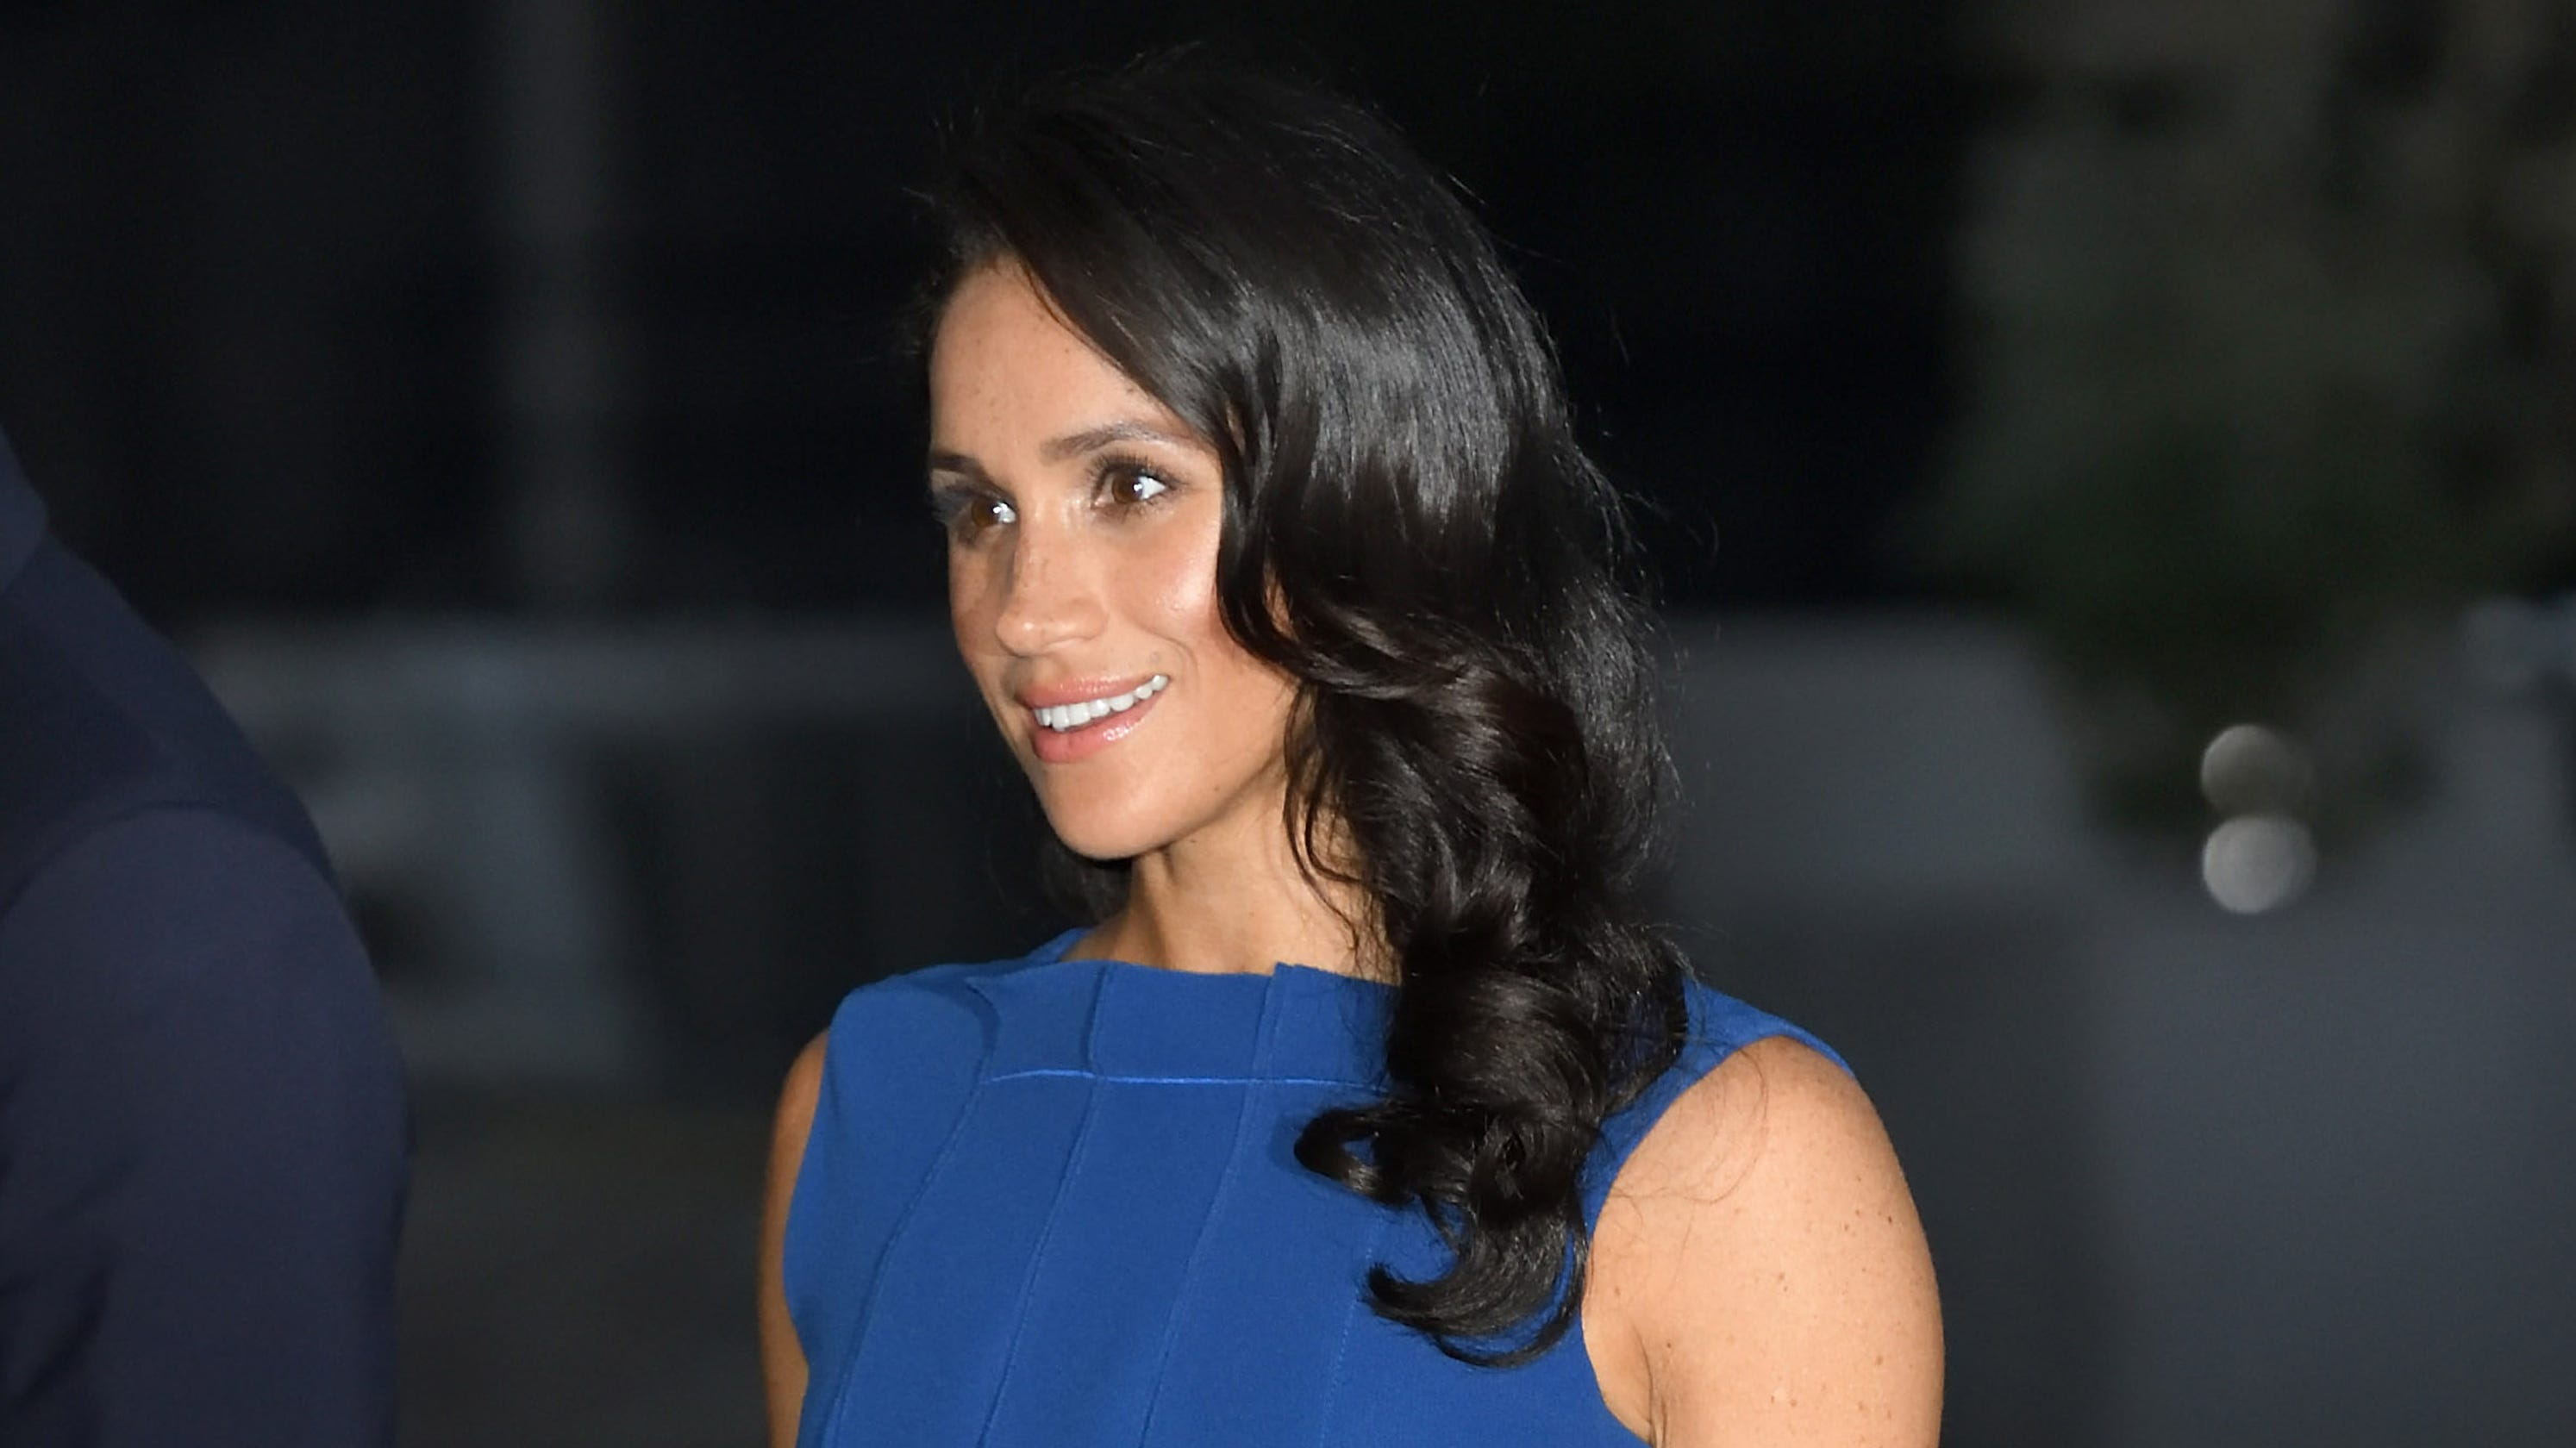 c5472f7c5c Is Duchess Meghan pregnant  Twitter and tabloids claim to know